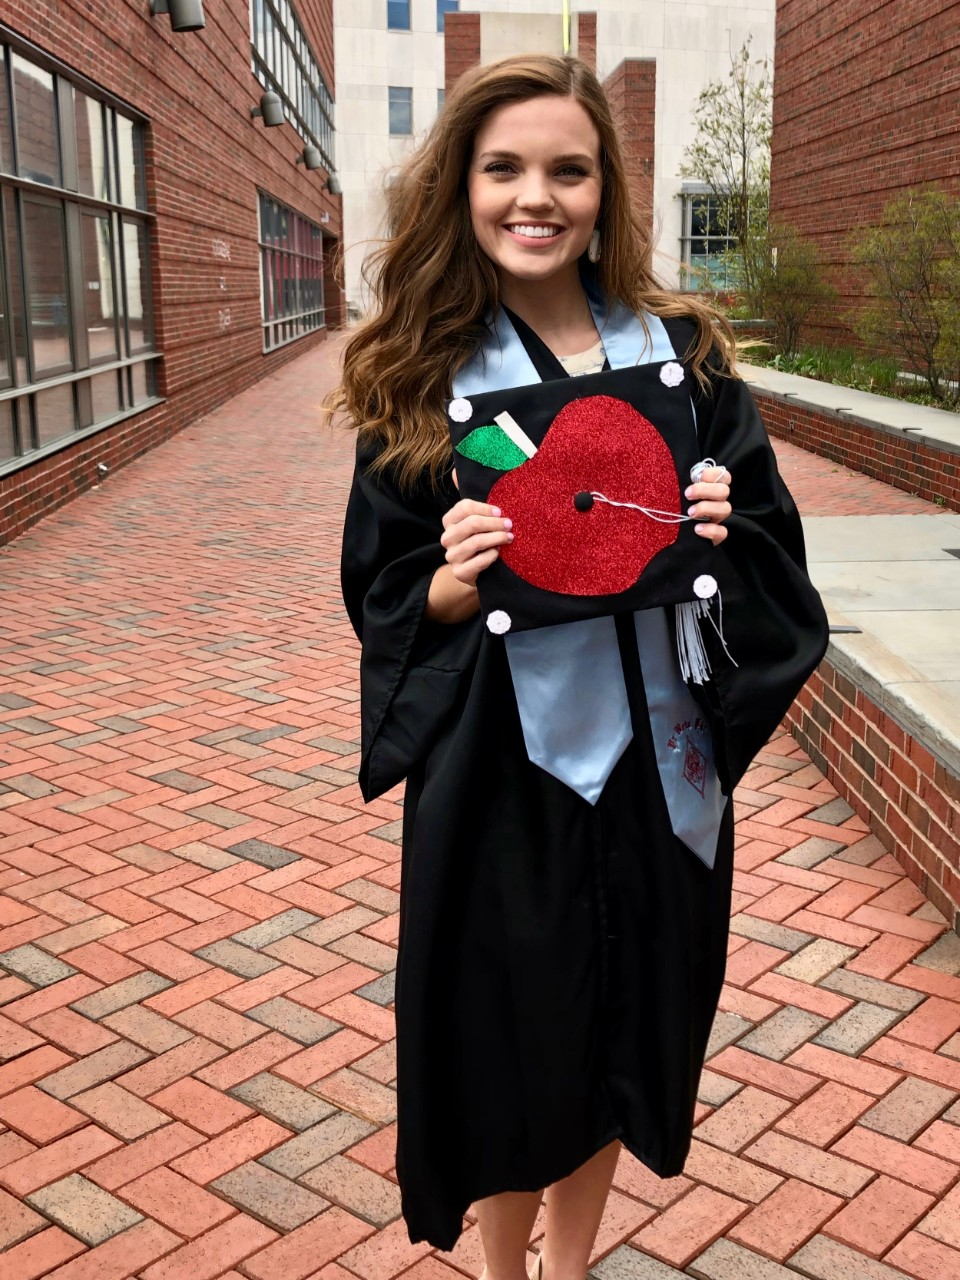 Amanda Bright, UC CECH grad, holds her graduation cap to show the teacher's apple design she created on the top.